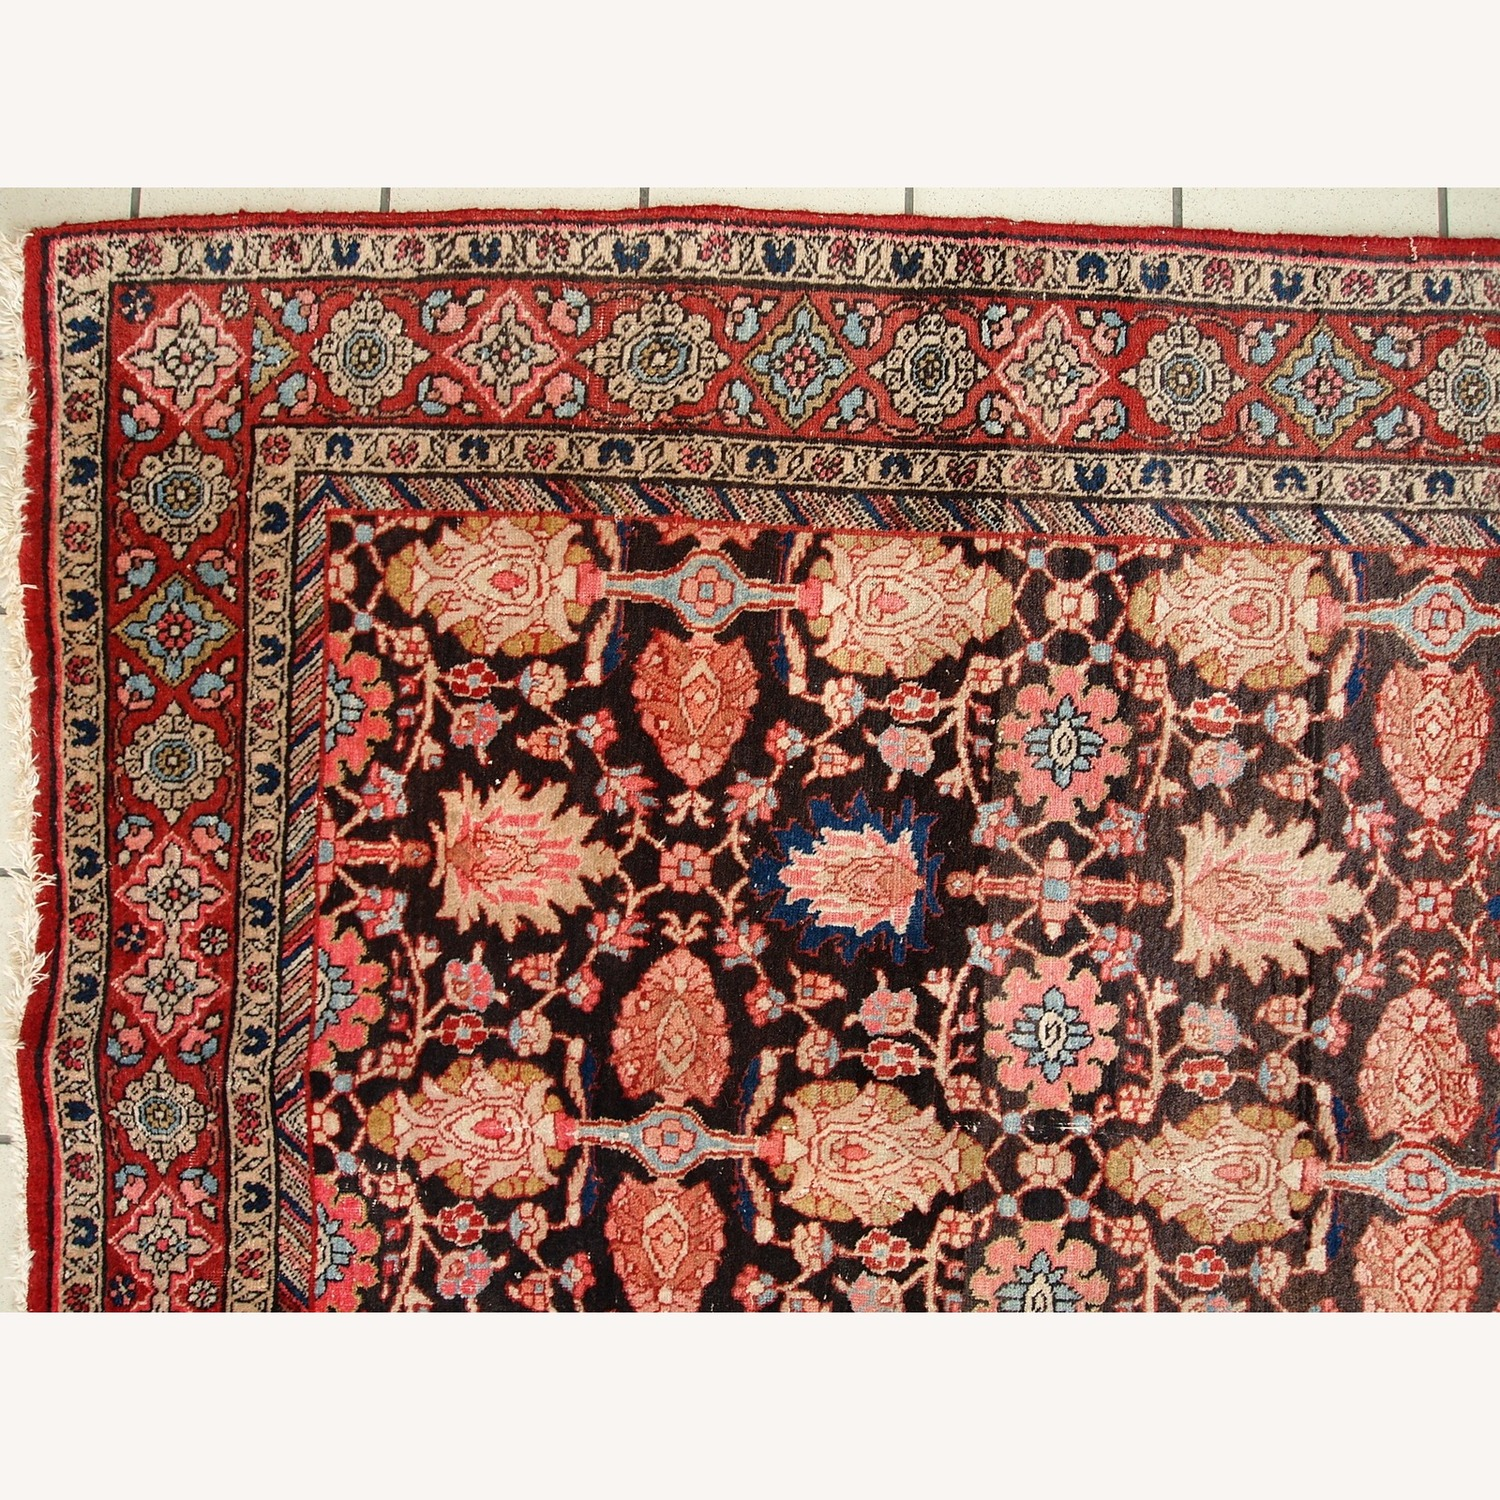 Handmade Antique Persian Bidjar Rug - image-13